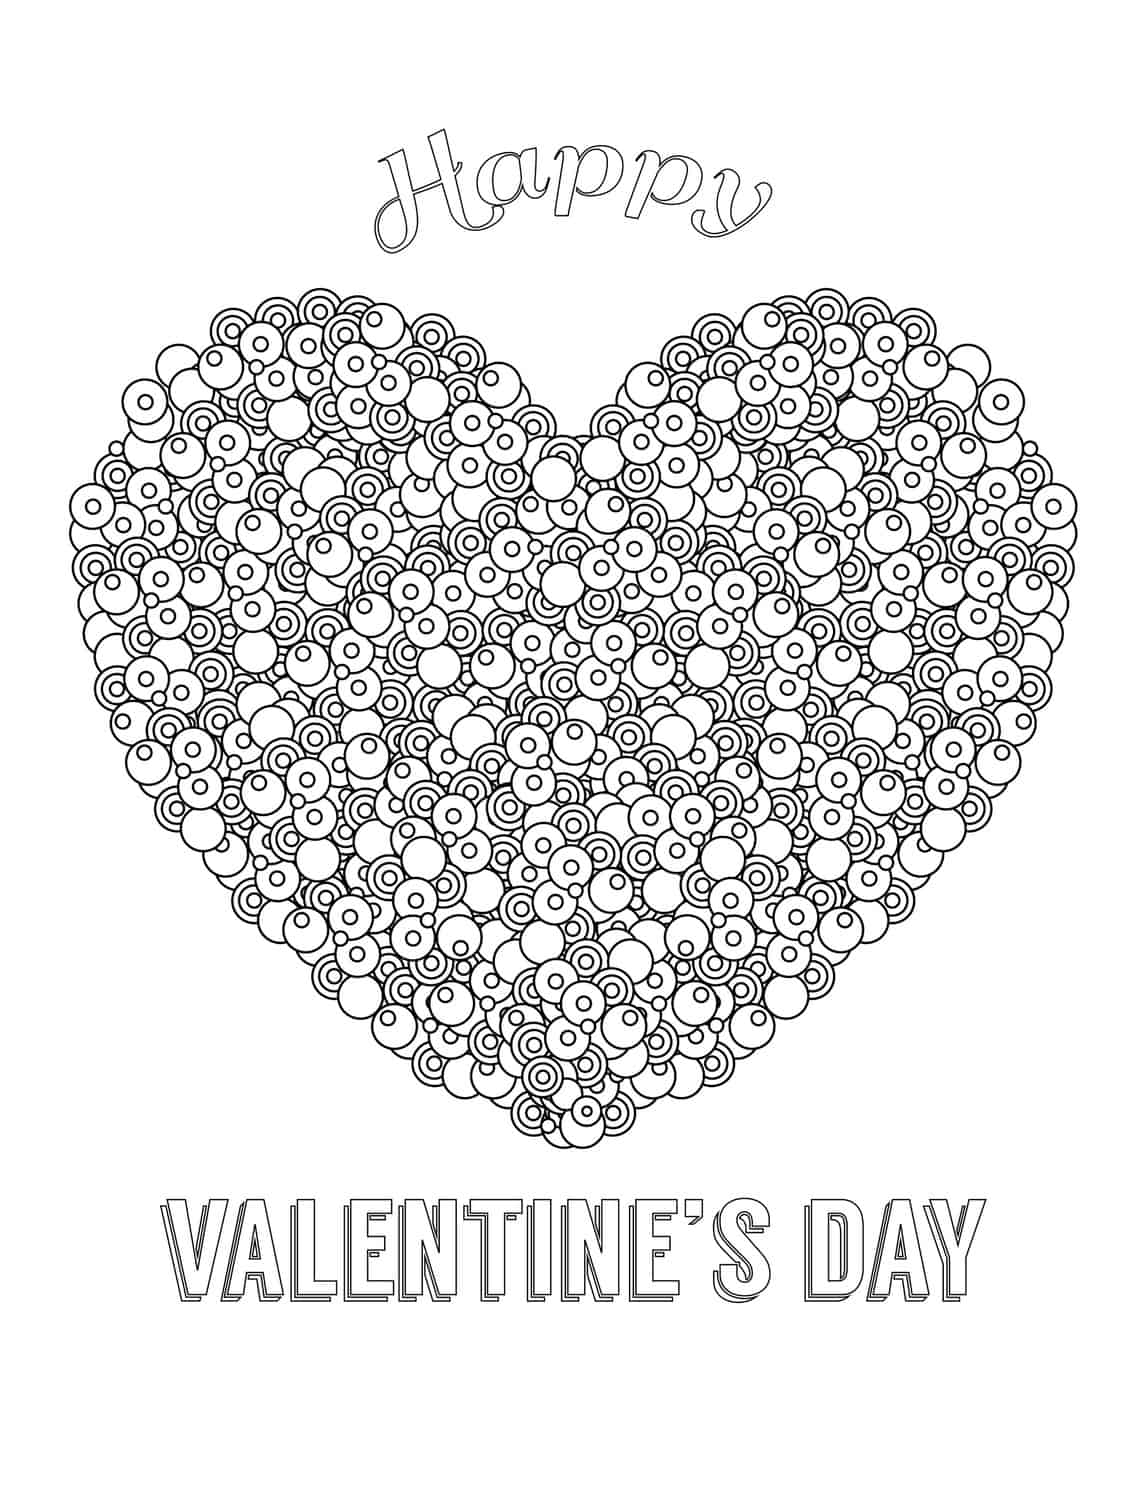 Happy Valentines Day Free Printable Adult Coloring Page